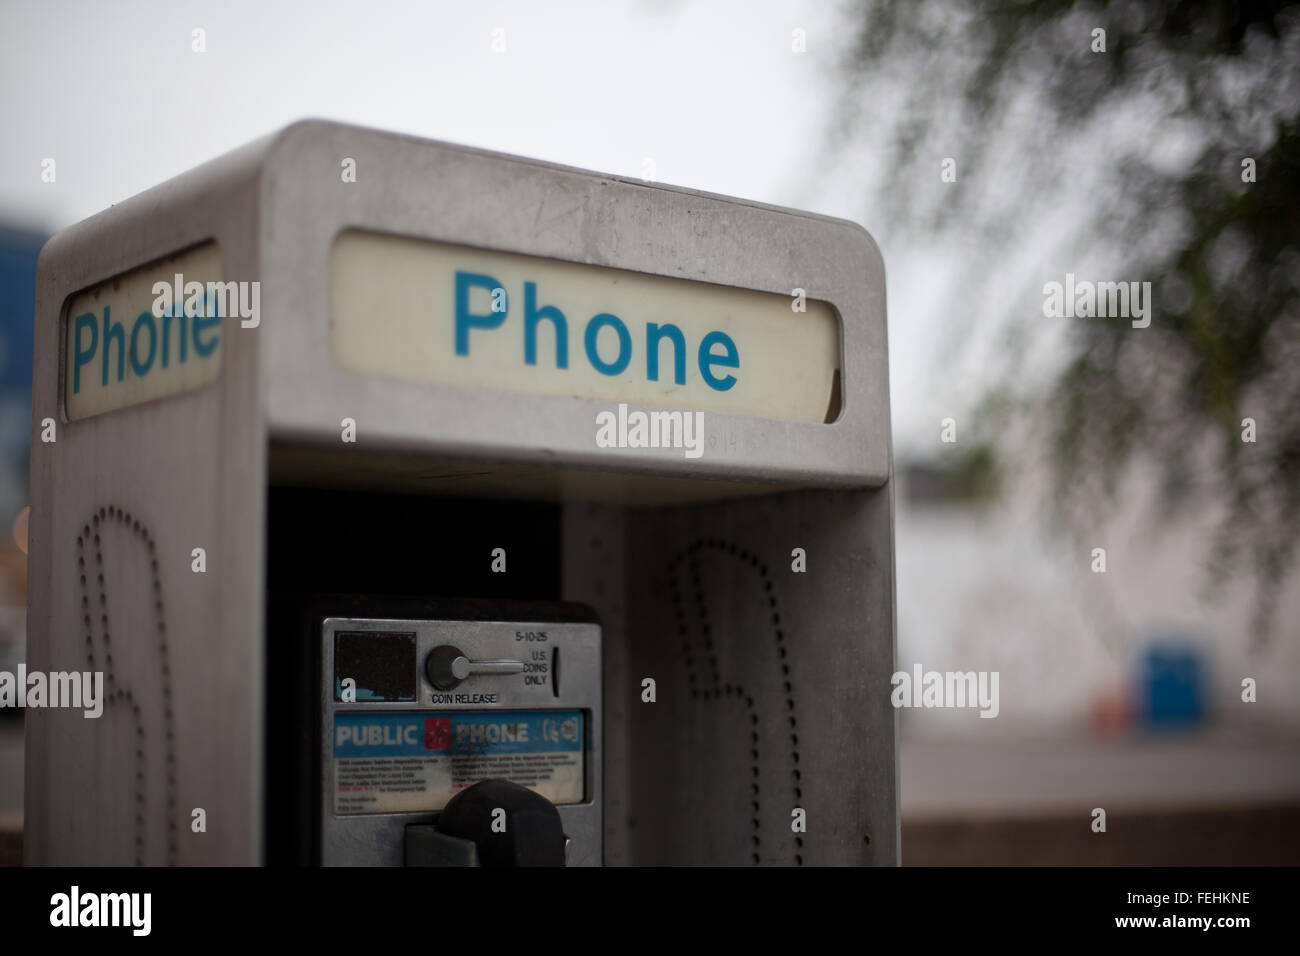 Detail of public telephone box in Beverly Hills, Los Angeles. - Stock Image